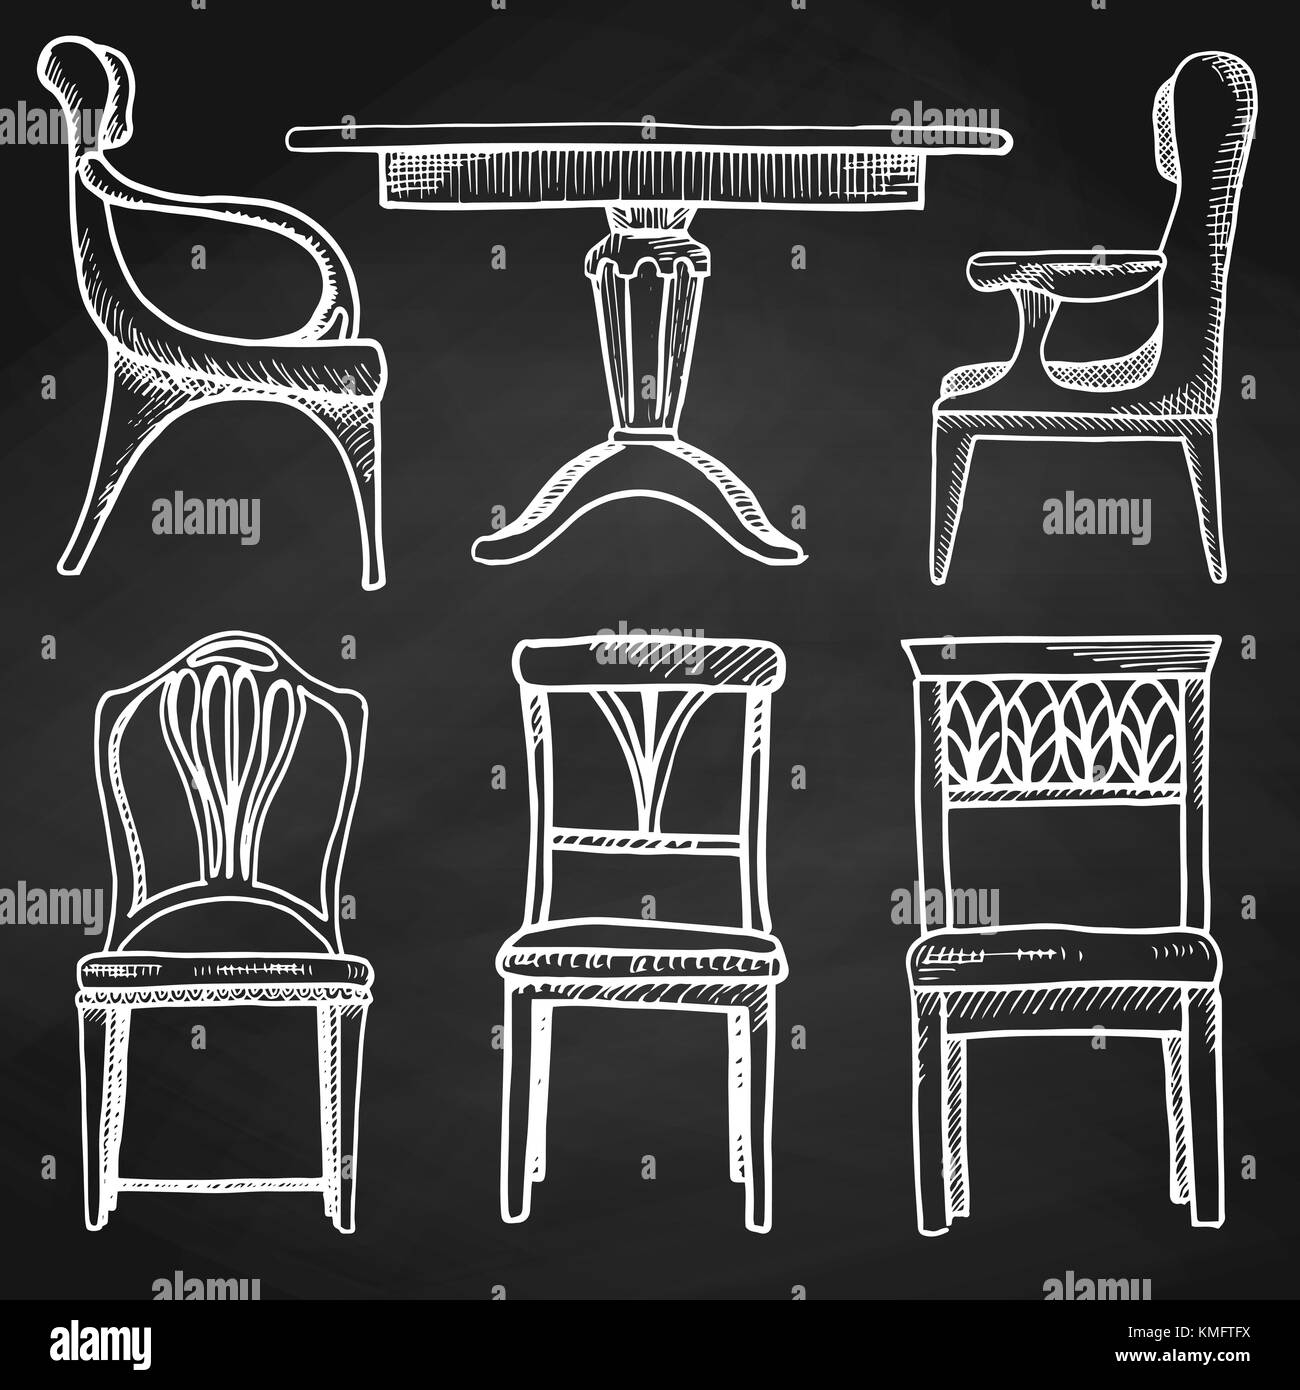 Sketch Set Isolated Furniture. Different Chairs And Tables. Hand Drawn  Chalk On A Chalkboard.Vector Illustration In A Sketch Style.